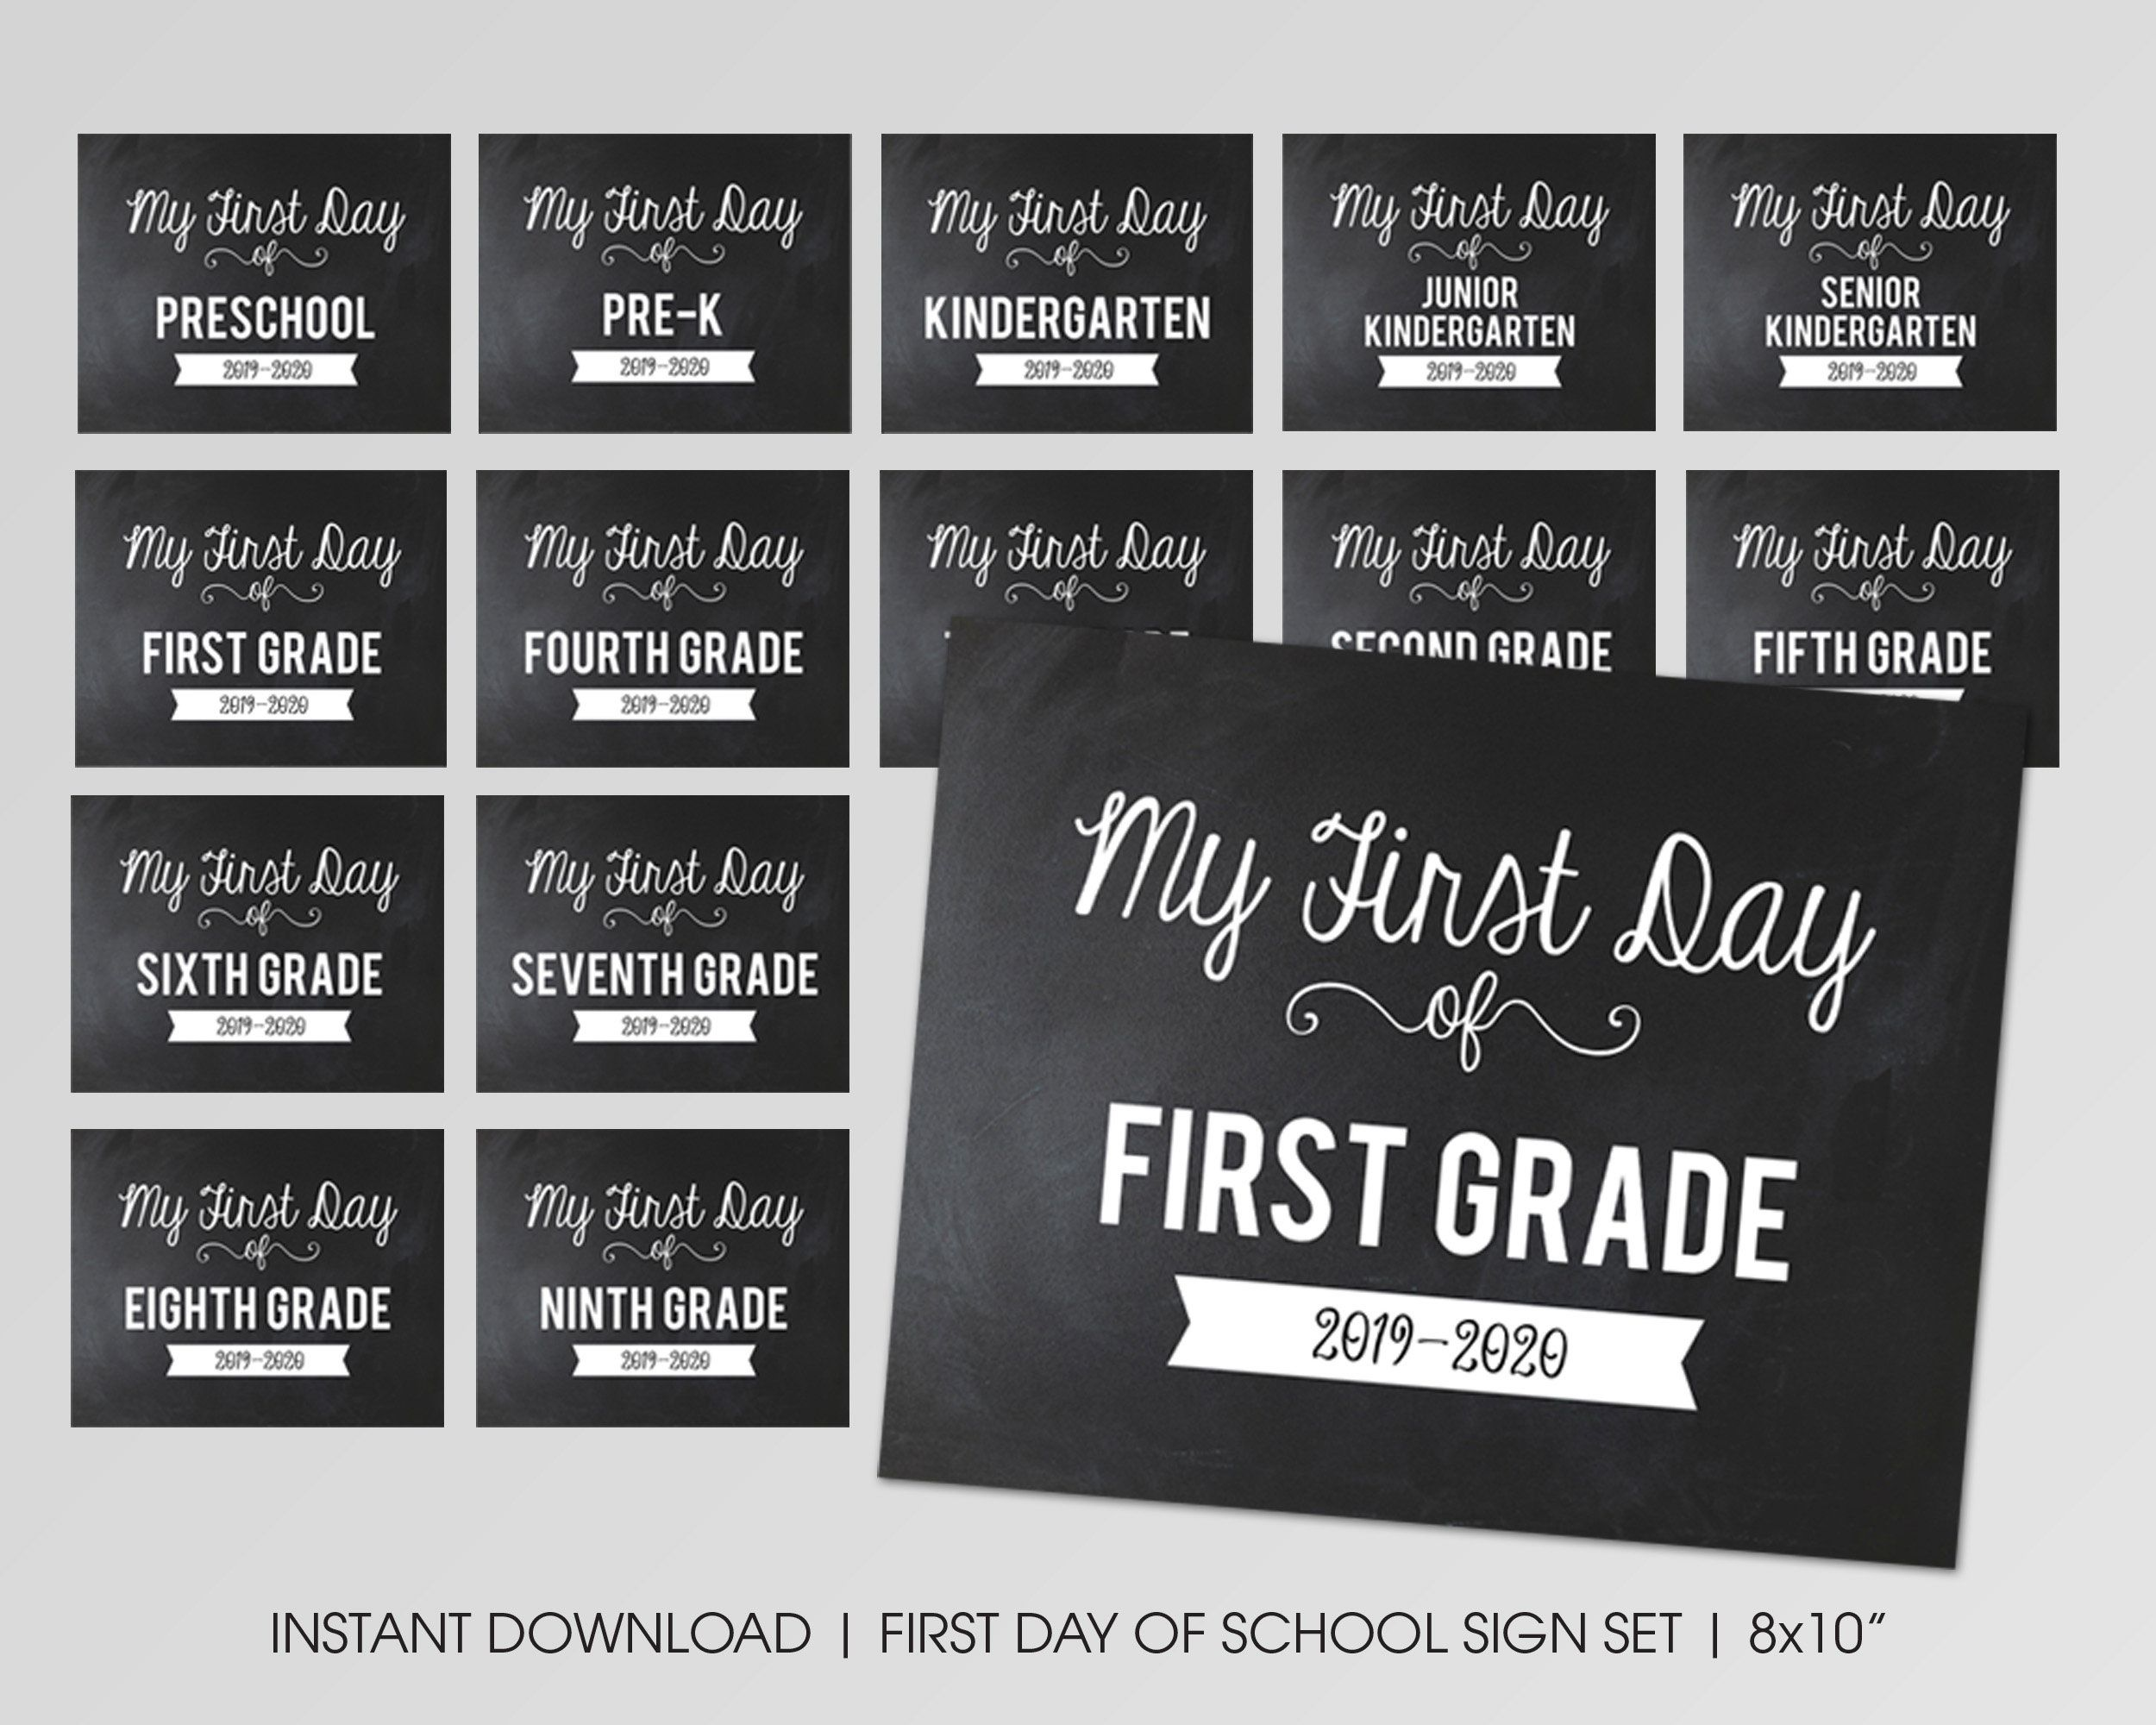 Printable First Day of School Sign - First Day of Sign Set - First Day of School Printable - Back to School Sign - Printable Photo Prop #firstdayofschoolsign